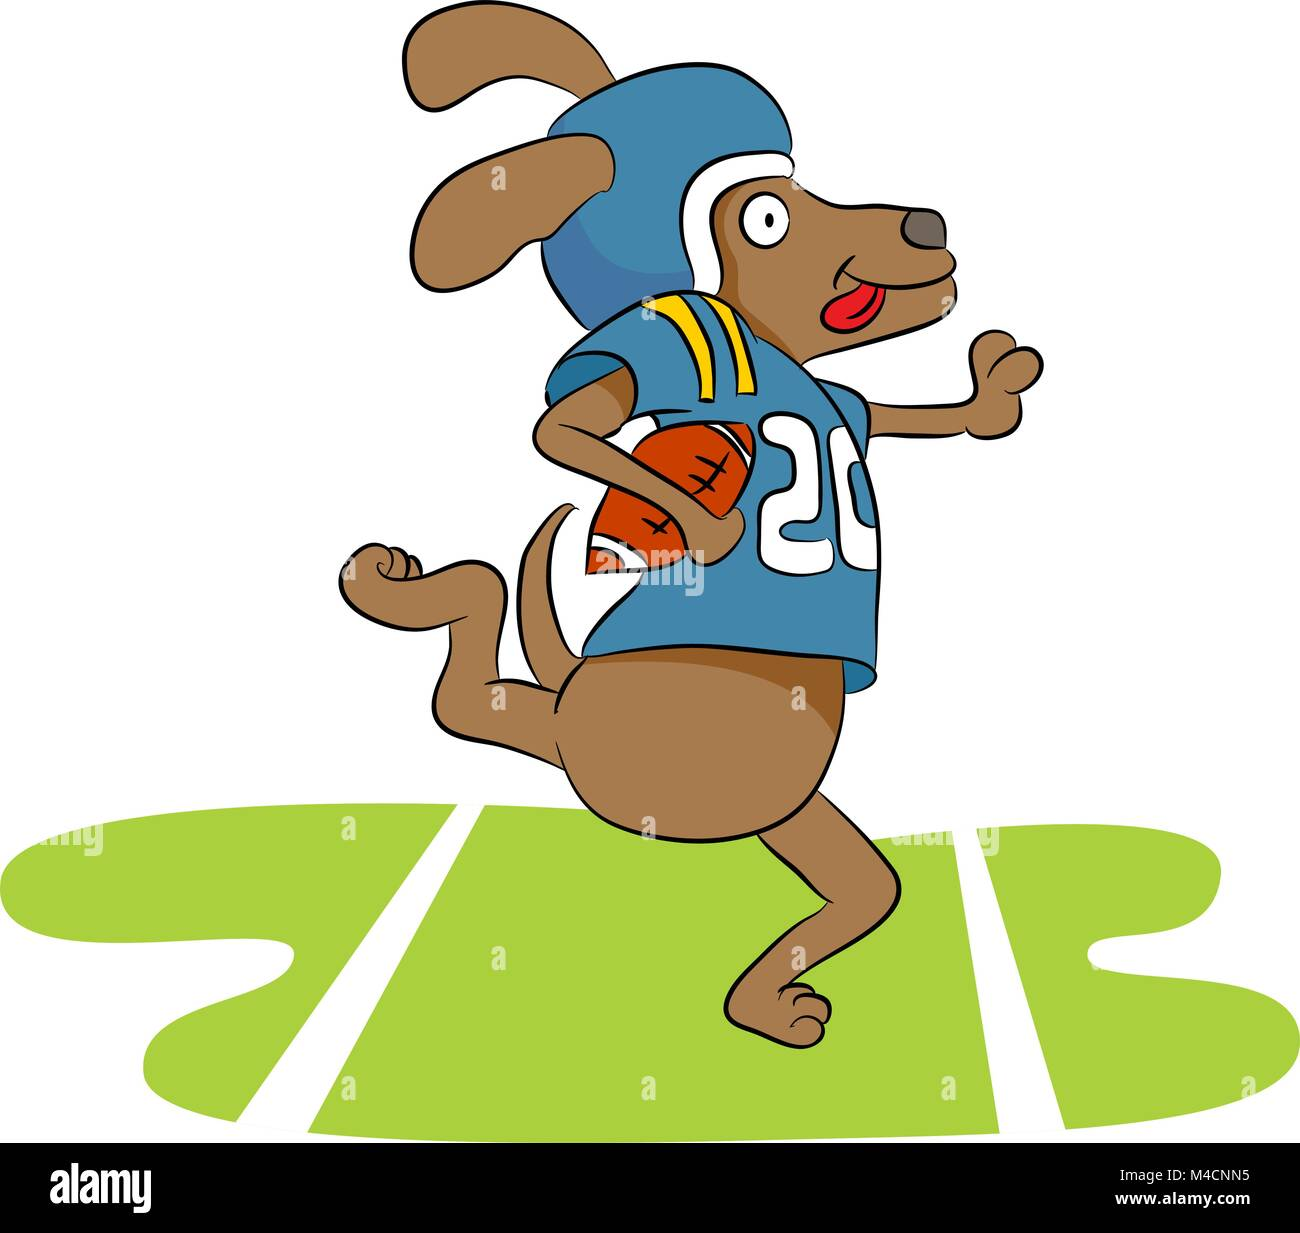 an image of a dog football player stock vector